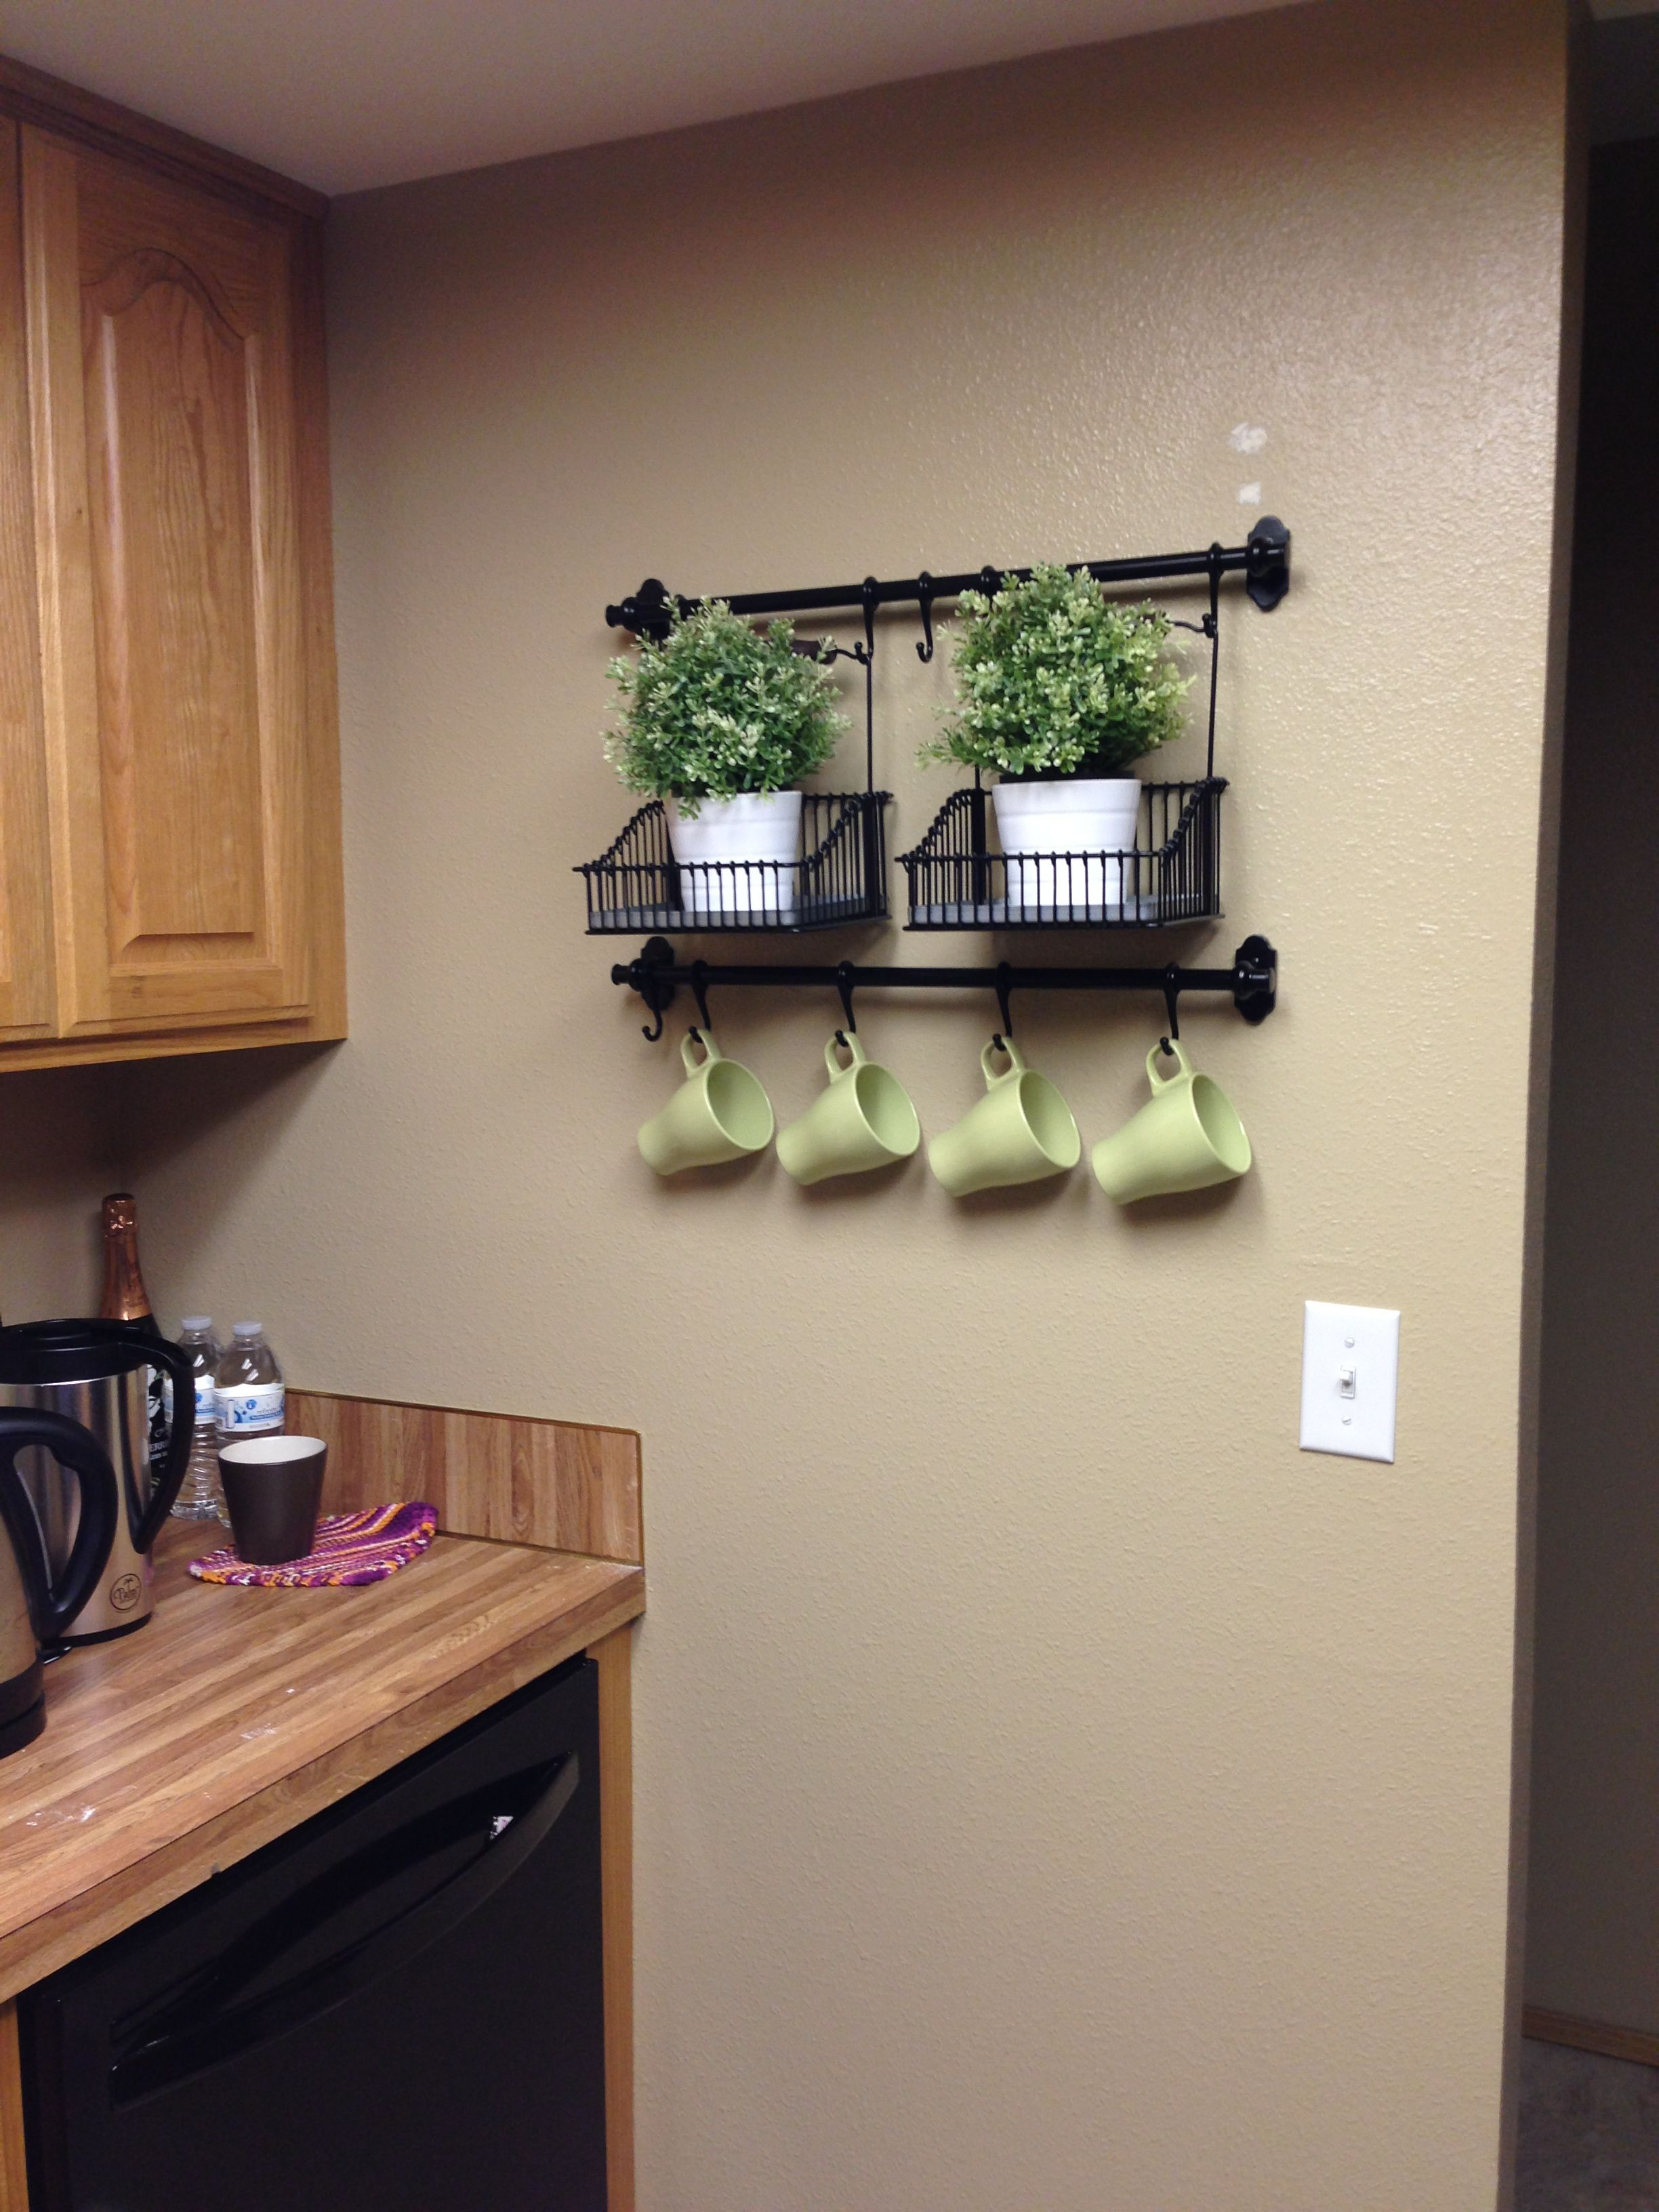 New kitchen wall decoration  My Projects in 2019